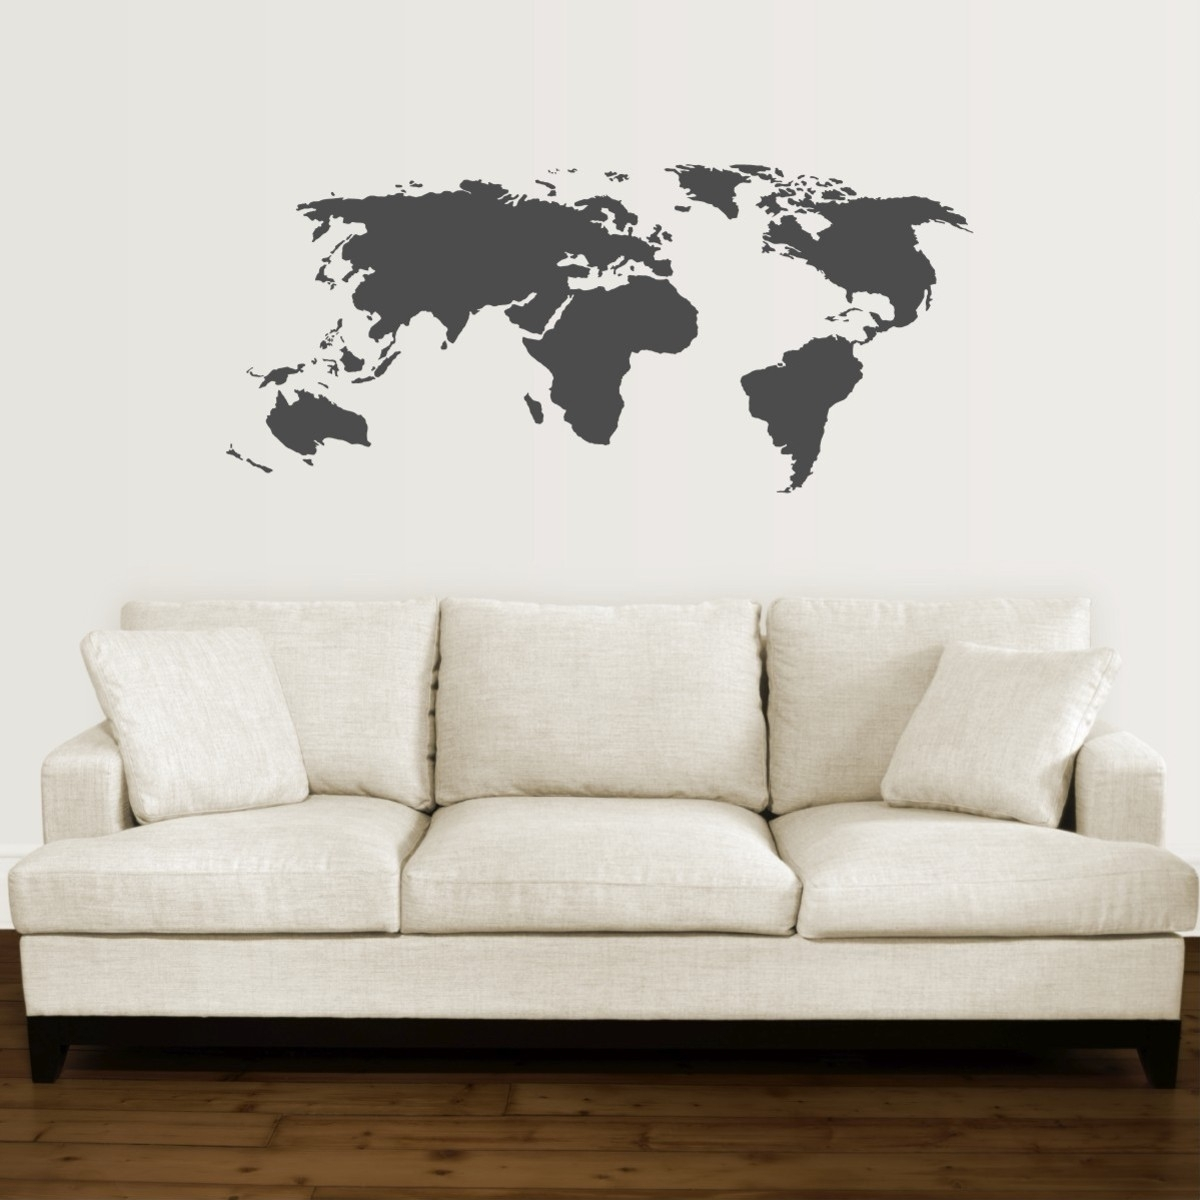 Fashionable Map Wall Art Intended For World Map Wall Quotes™ Wall Art Decal (View 6 of 15)